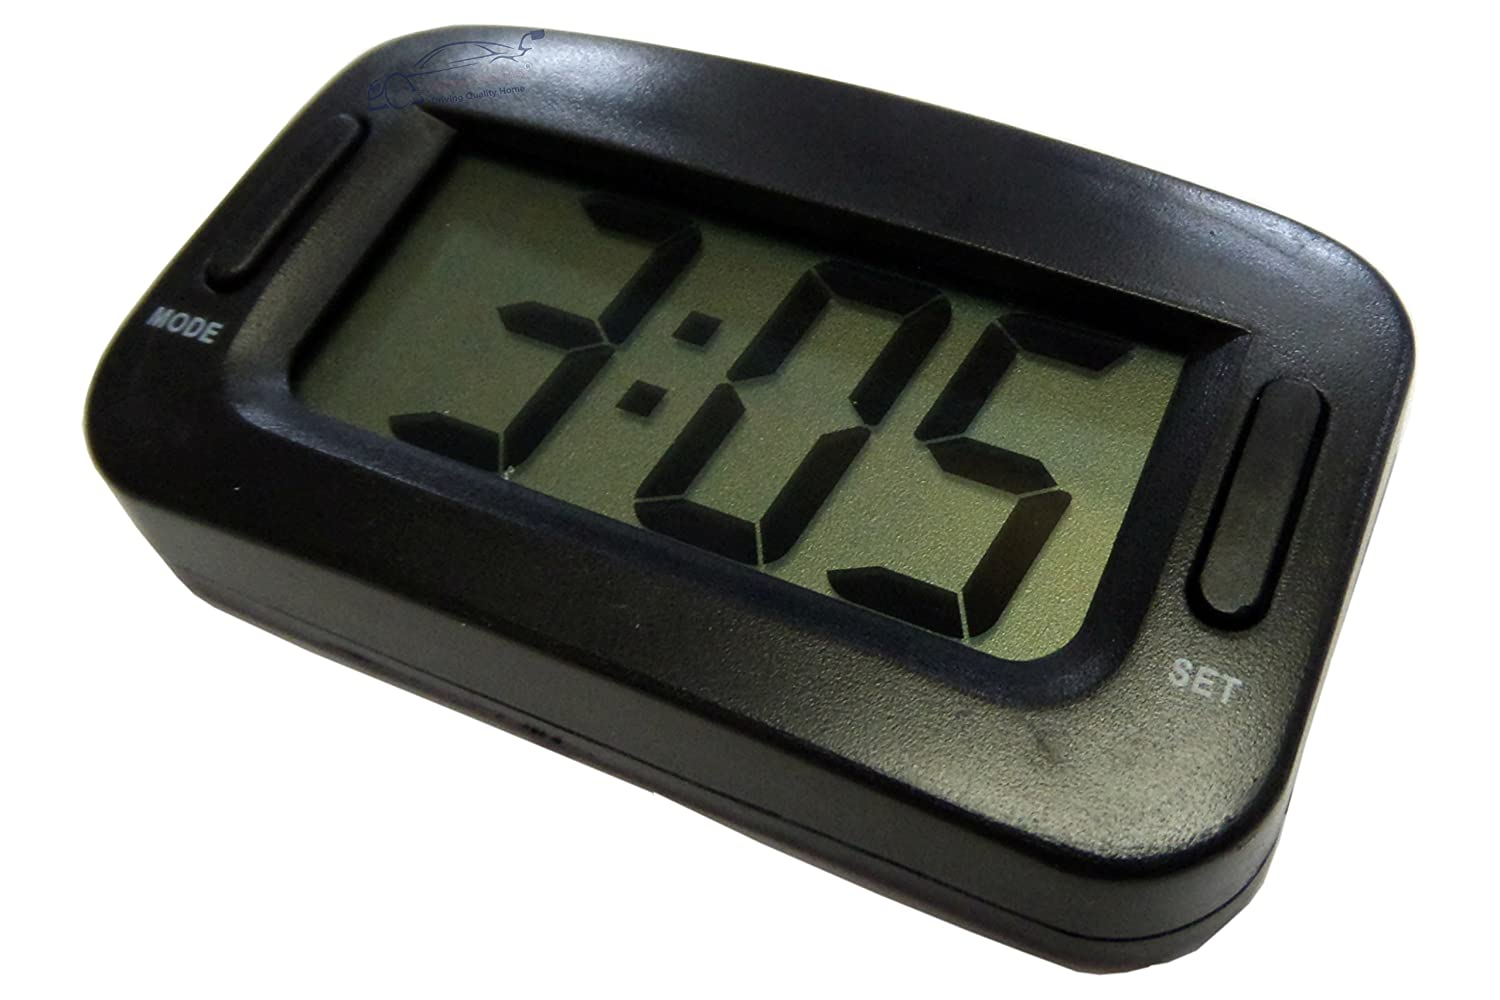 XtremeAuto® JUMBO / LARGE, Replacement Digital Clock for Car Dashboard. Easy To Read, Extra Big Face. XtremeAuto®